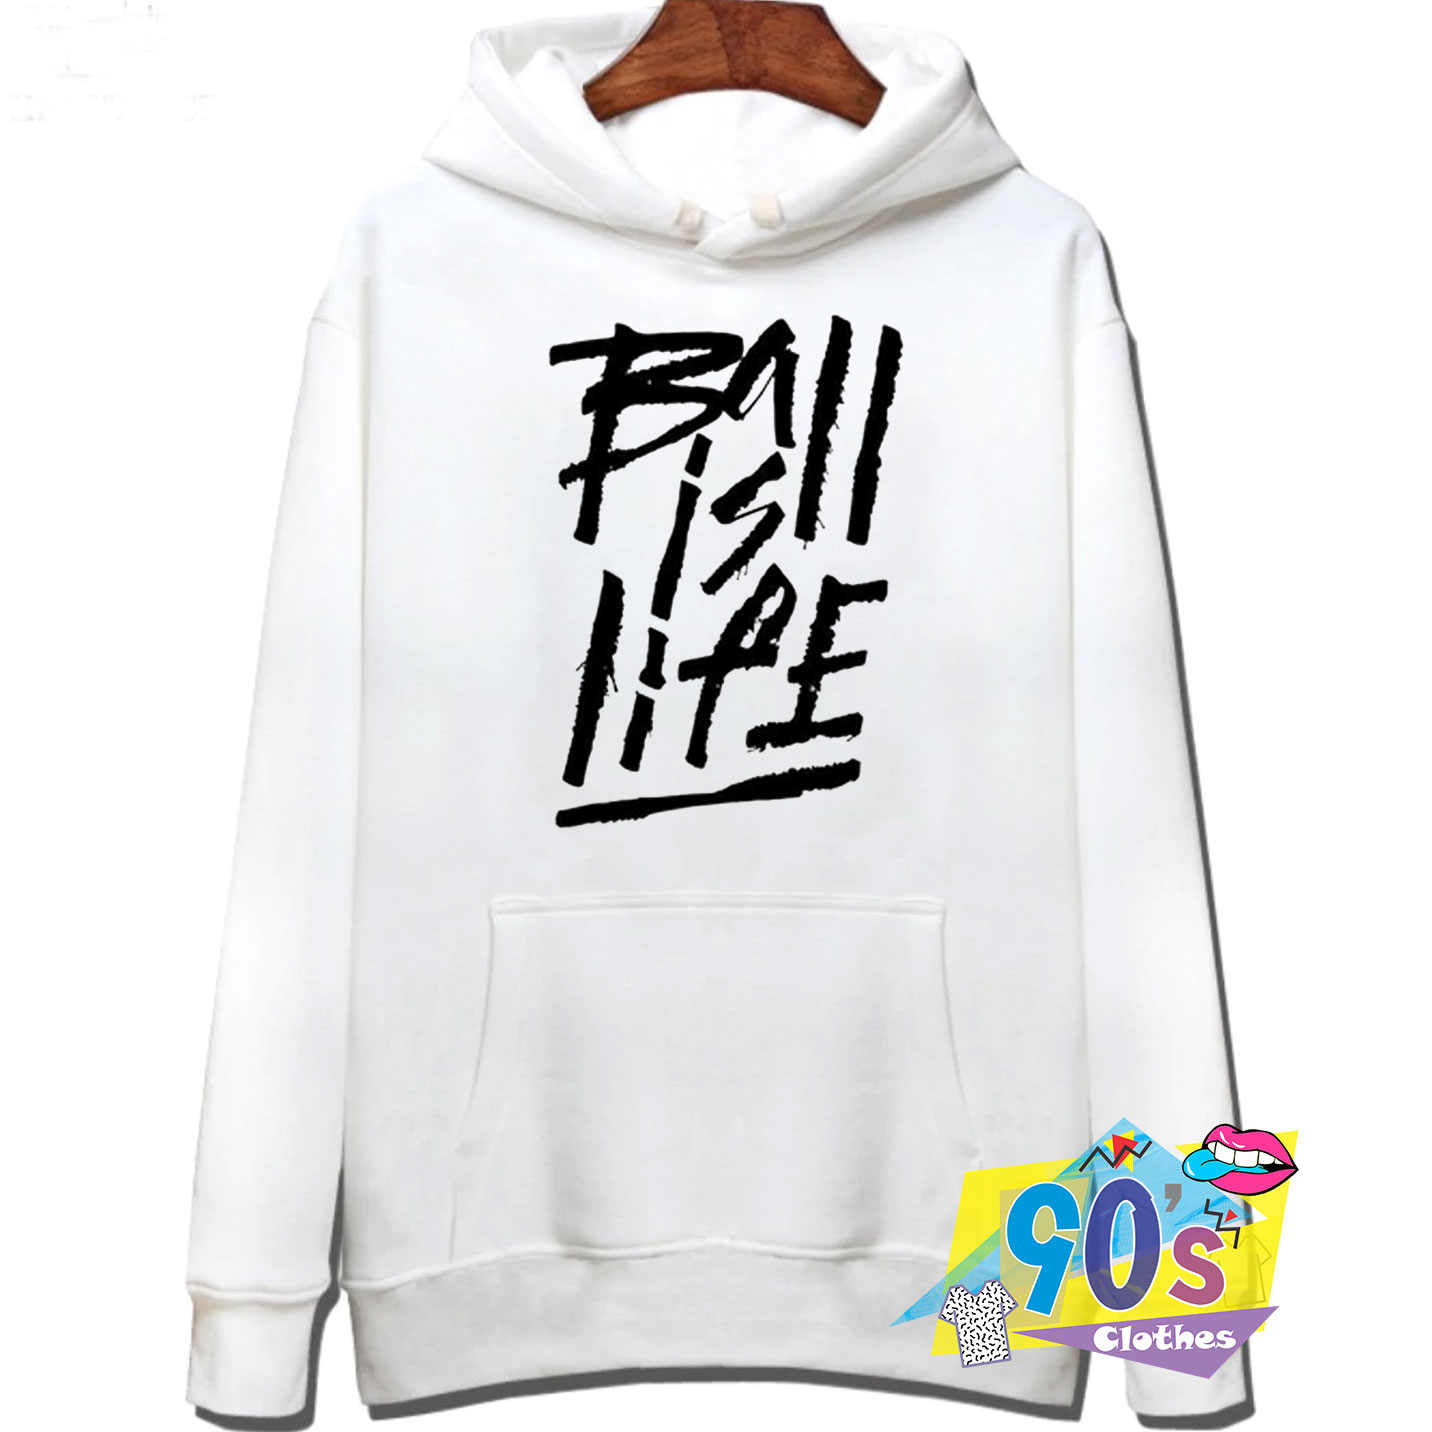 Ball Is Life Graphic Quote Hoodie - 90sclothes.com